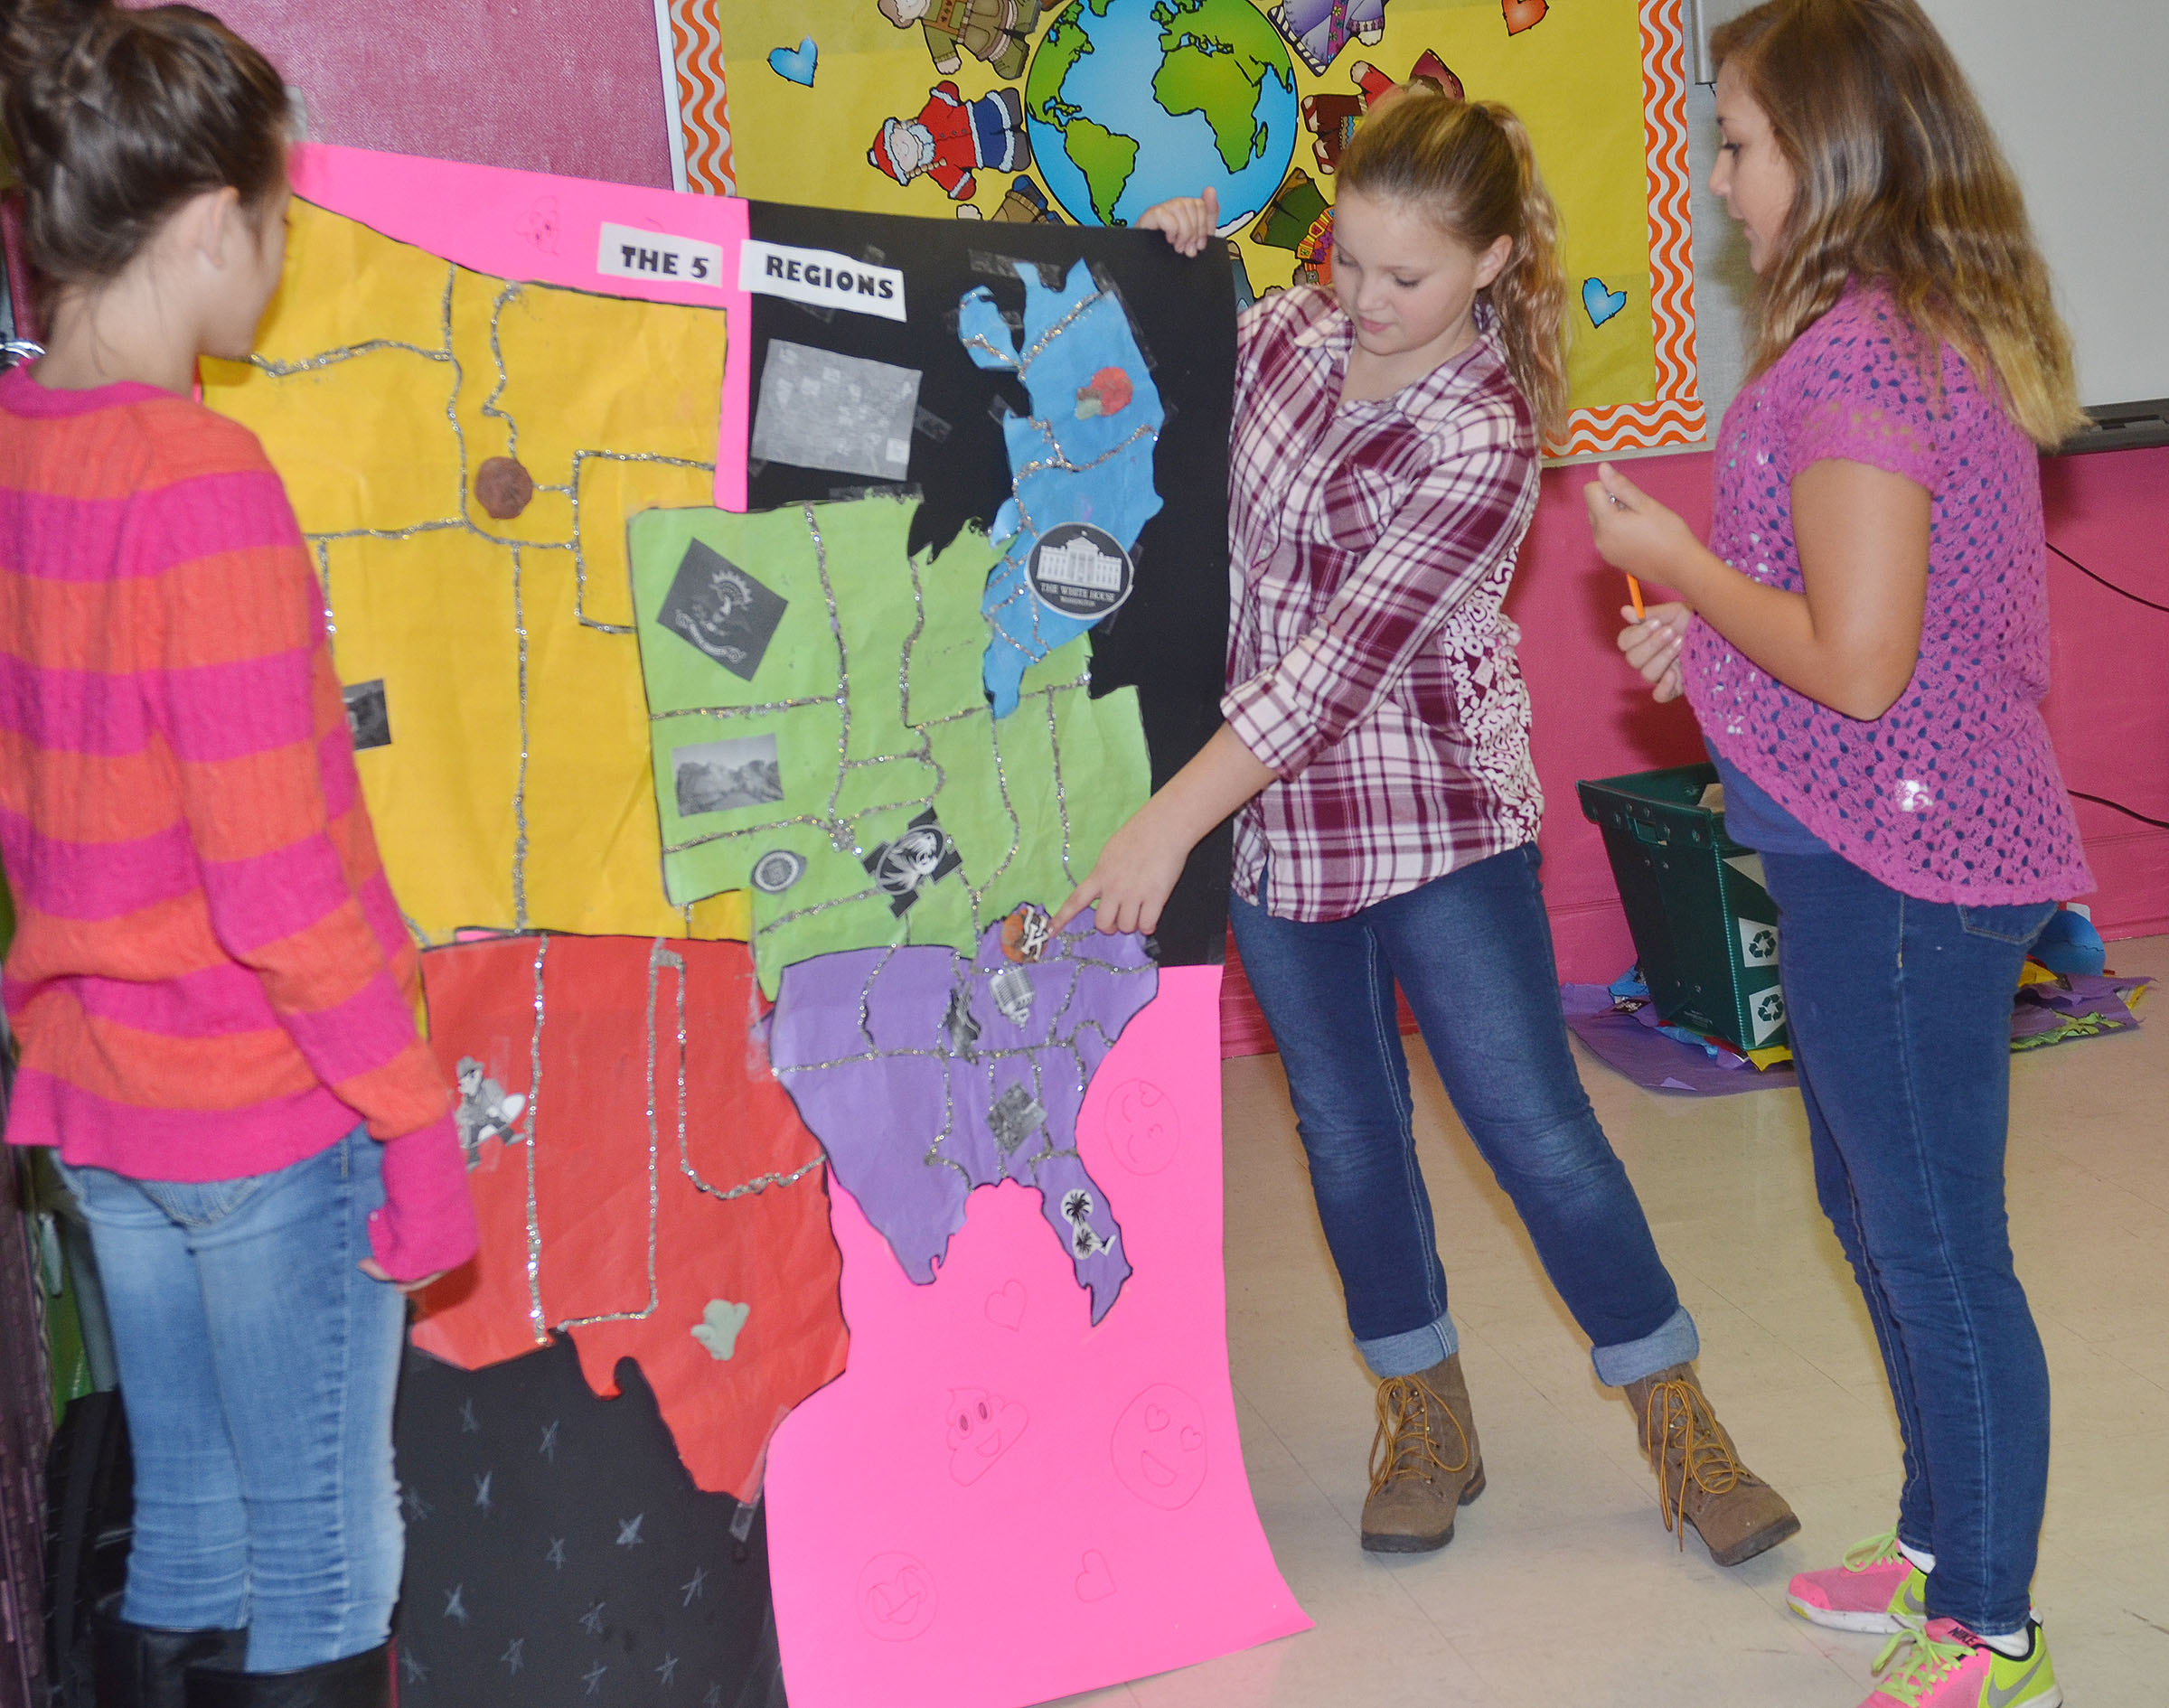 From left, CMS sixth-graders Emily Shuck, Graci Crews and Briana Davis tell their classmates about the map they made of the United States regions.